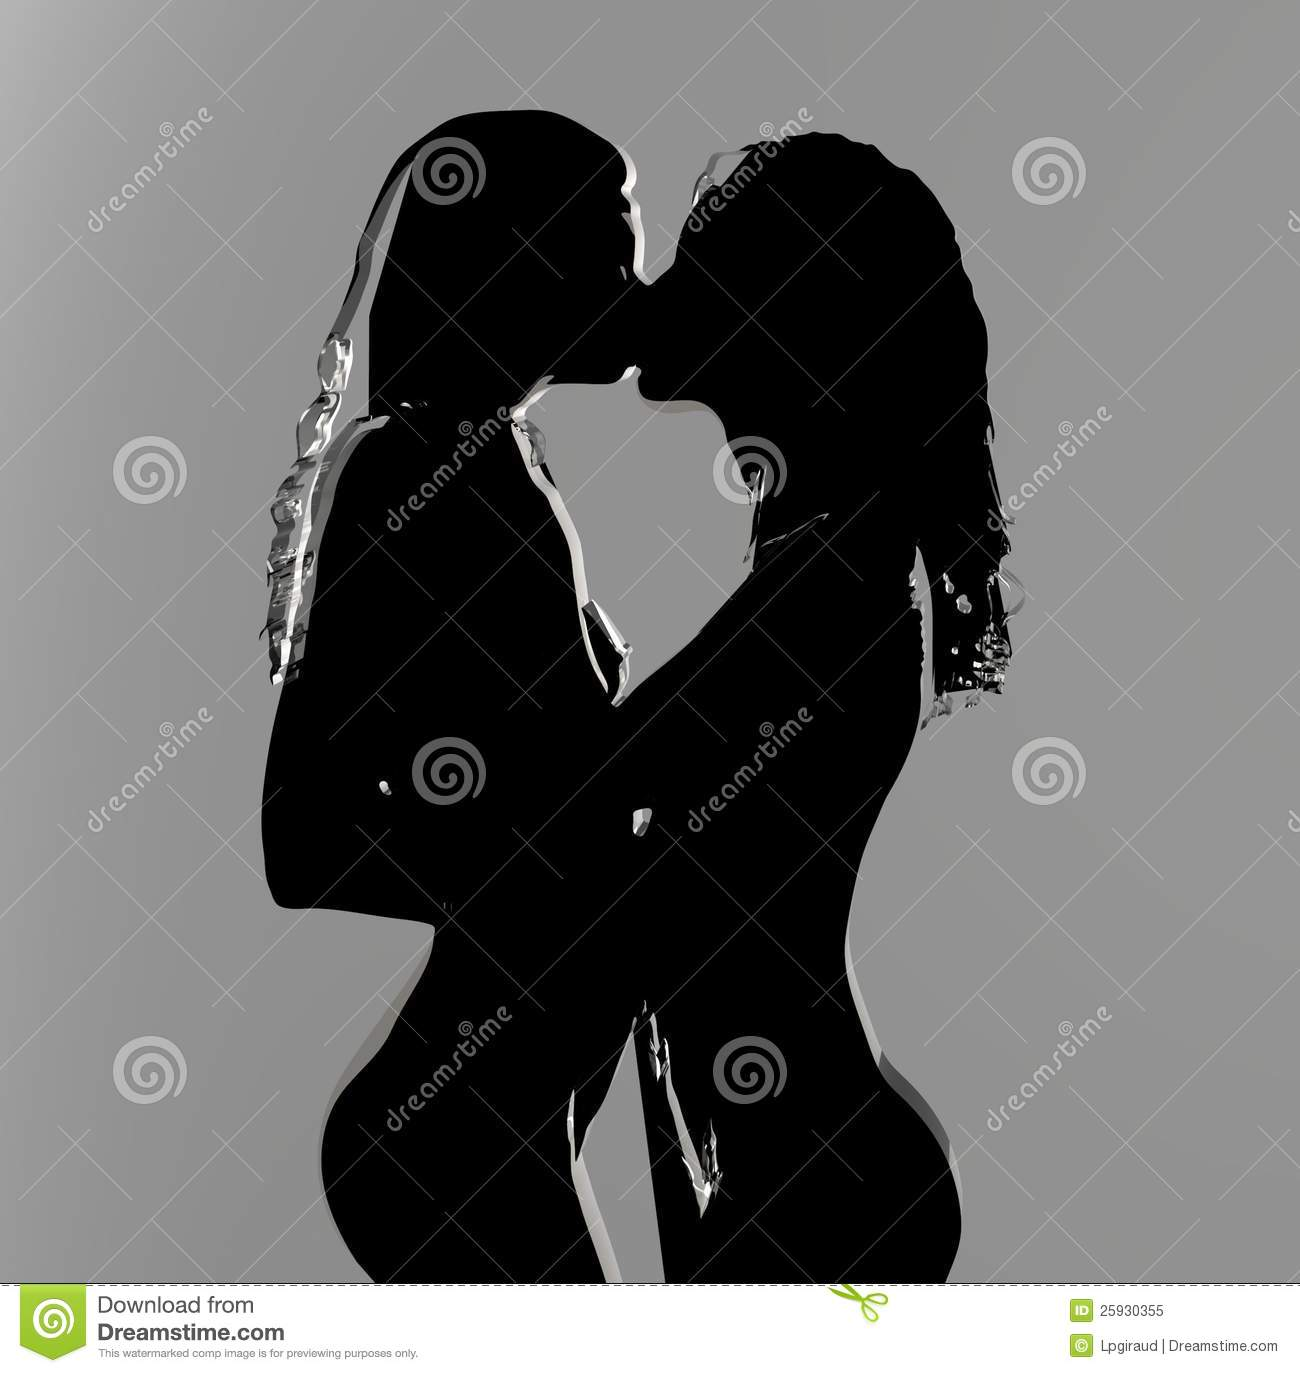 lesbian kiss royalty free stock photo image 25930355 clip art sounds for powerpoint clip art sounds free